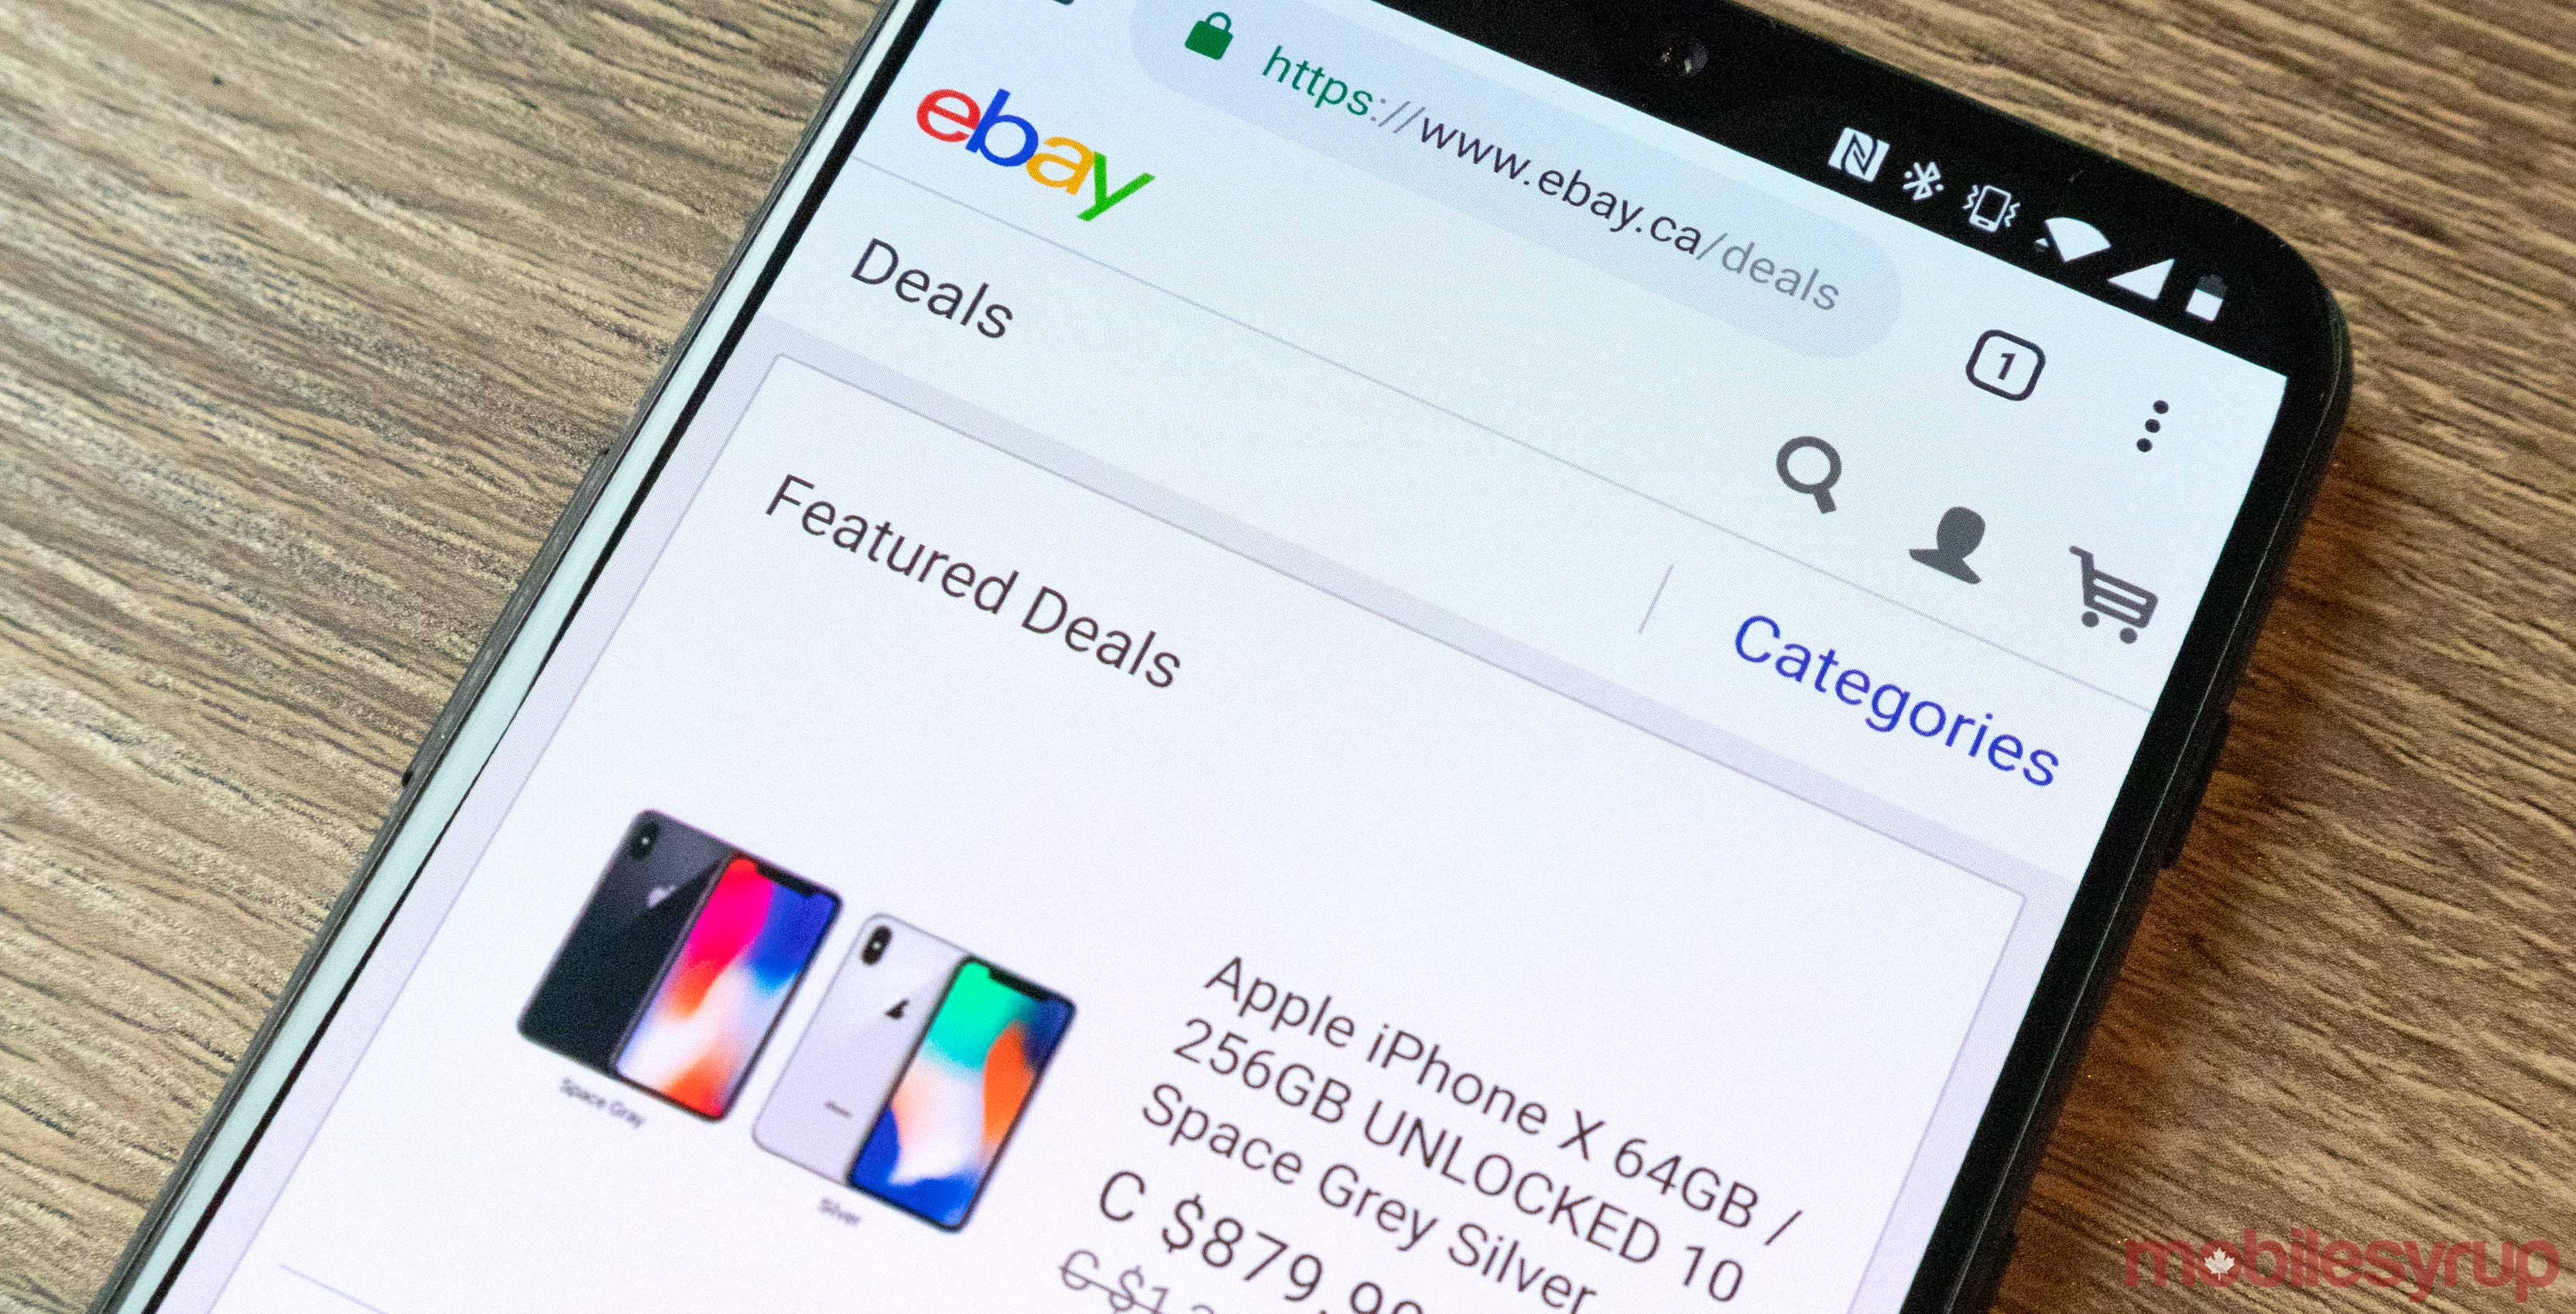 eBay competes with Prime Day by offering its own deals